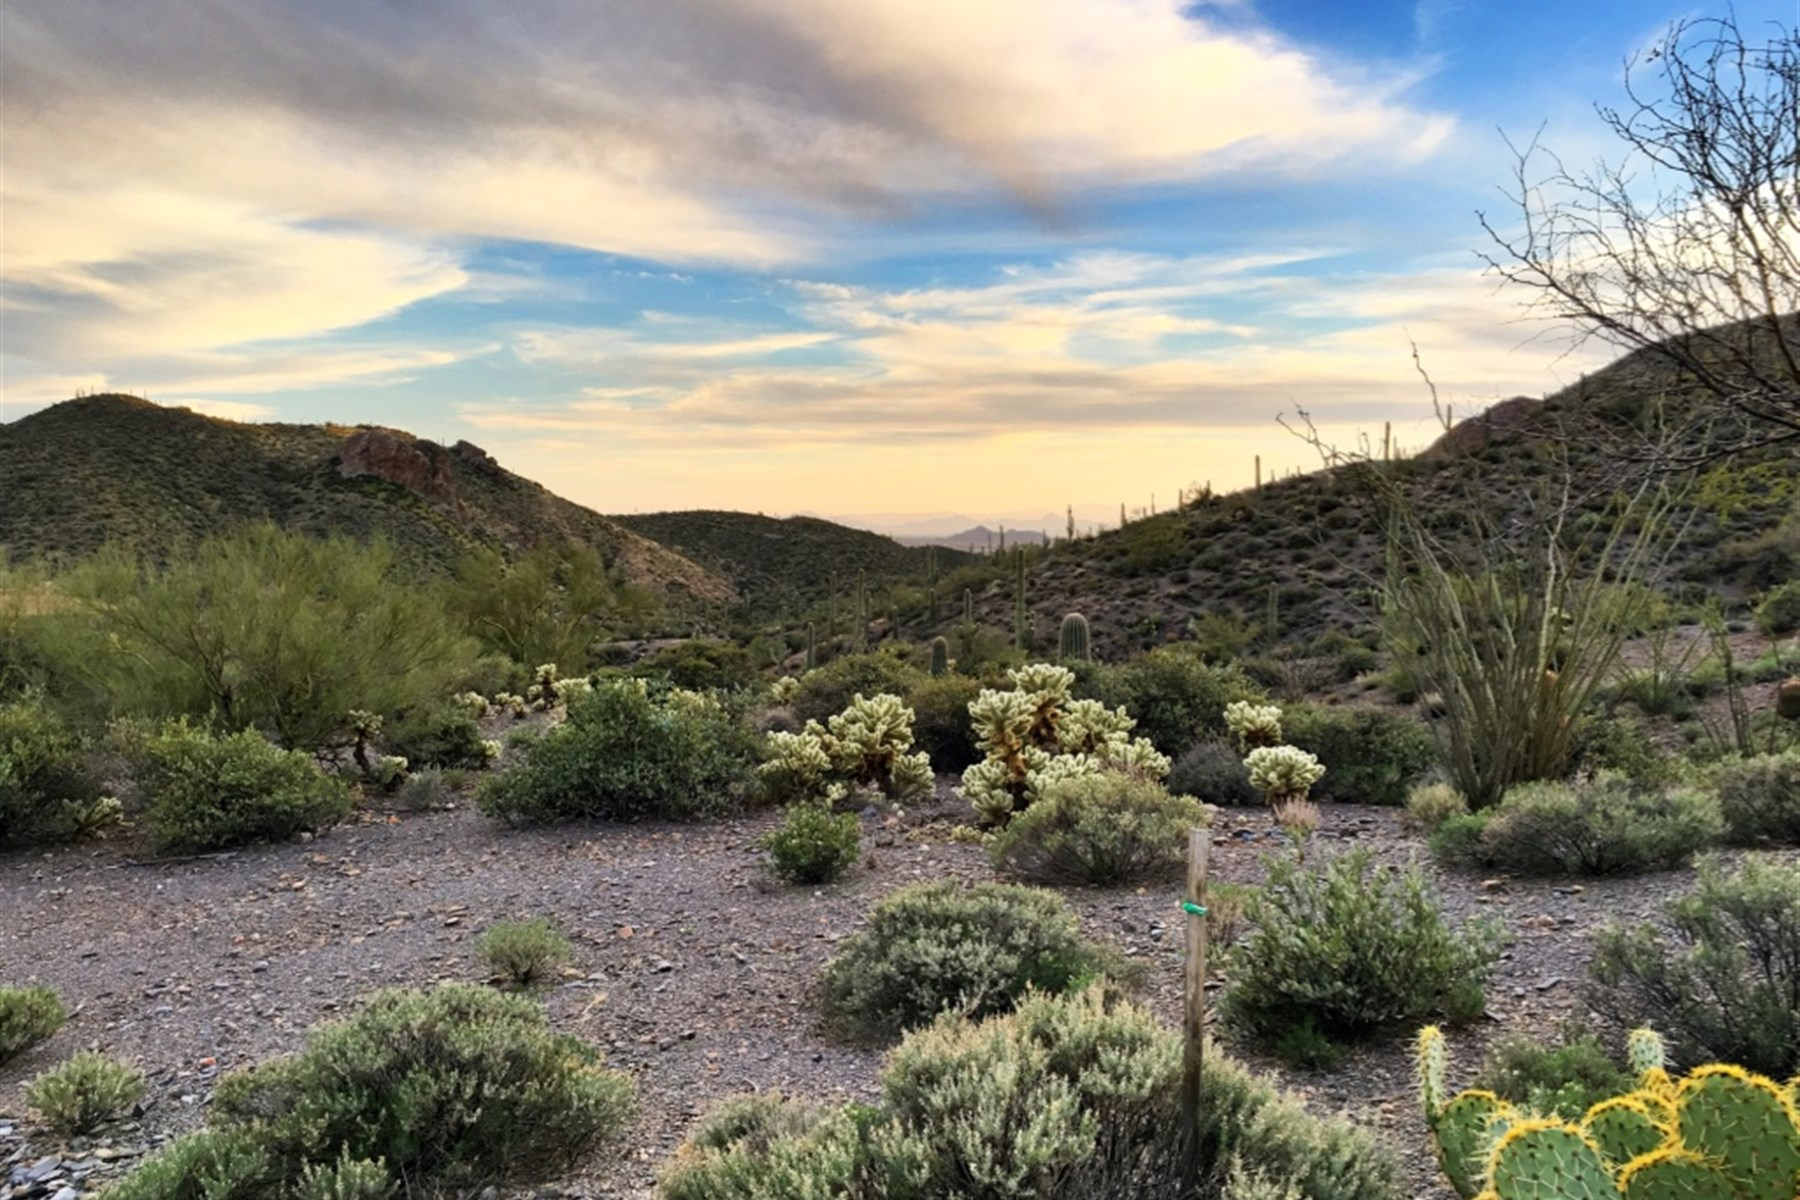 Land for Sale at 3.2-acre lot located within Desert Mountain's Cintarosa 42643 N Old Corral Rd #329 Scottsdale, Arizona, 85262 United States